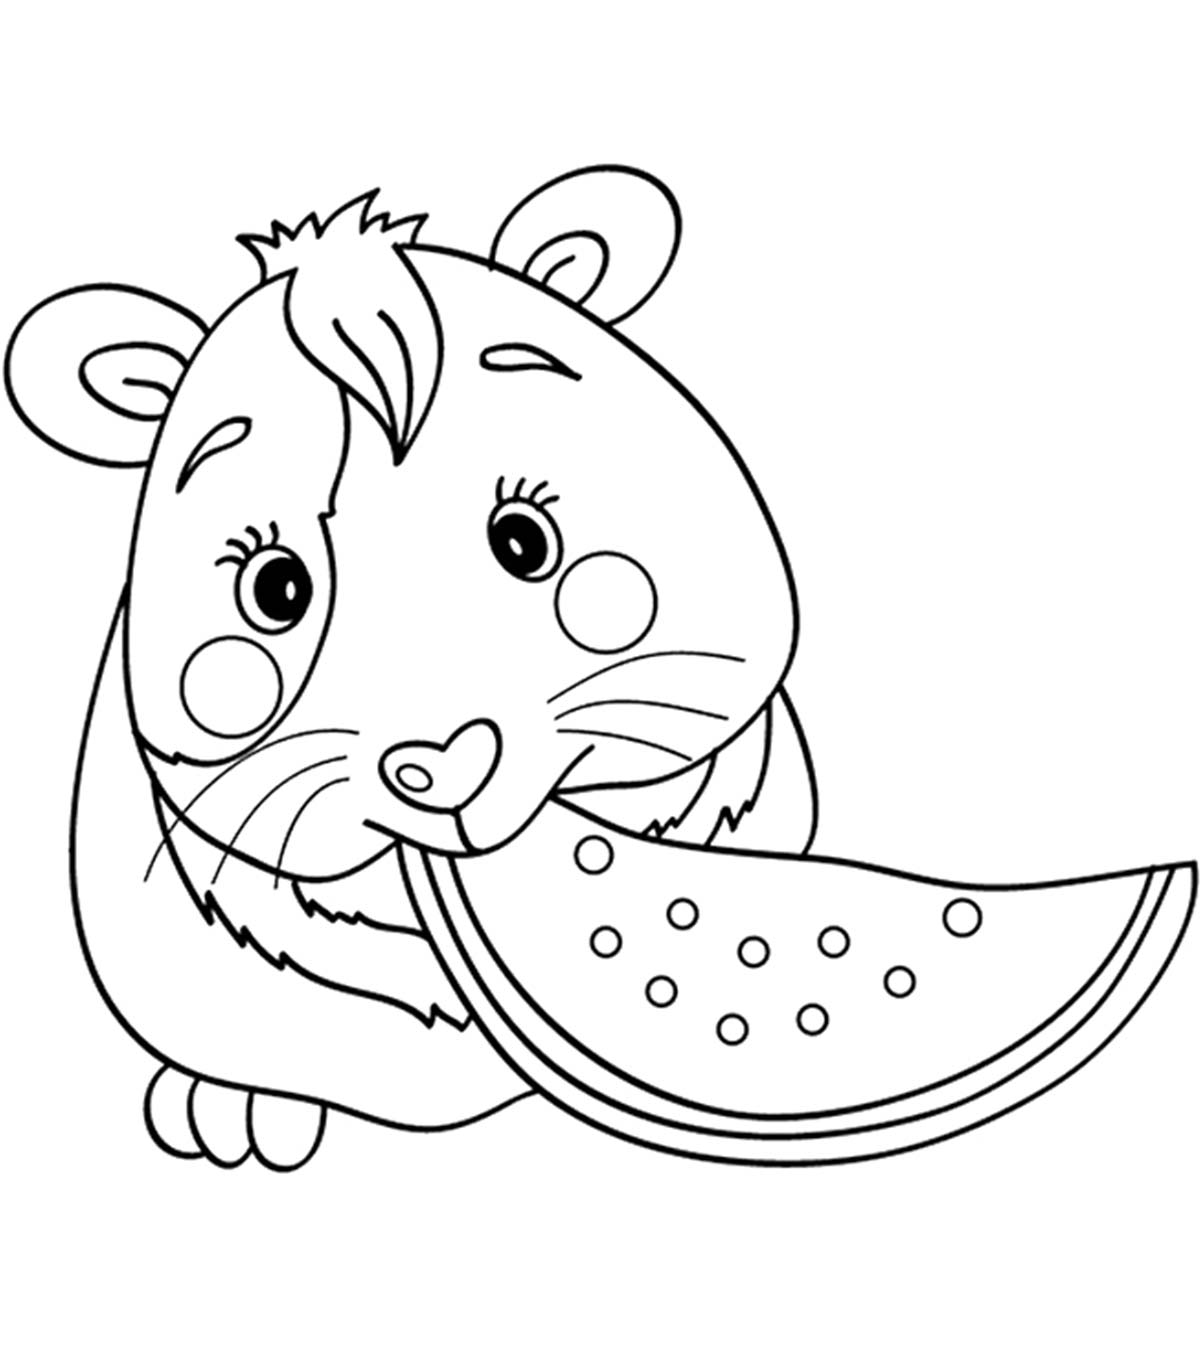 Top  Free Printable Guinea Pig Coloring Pages Online